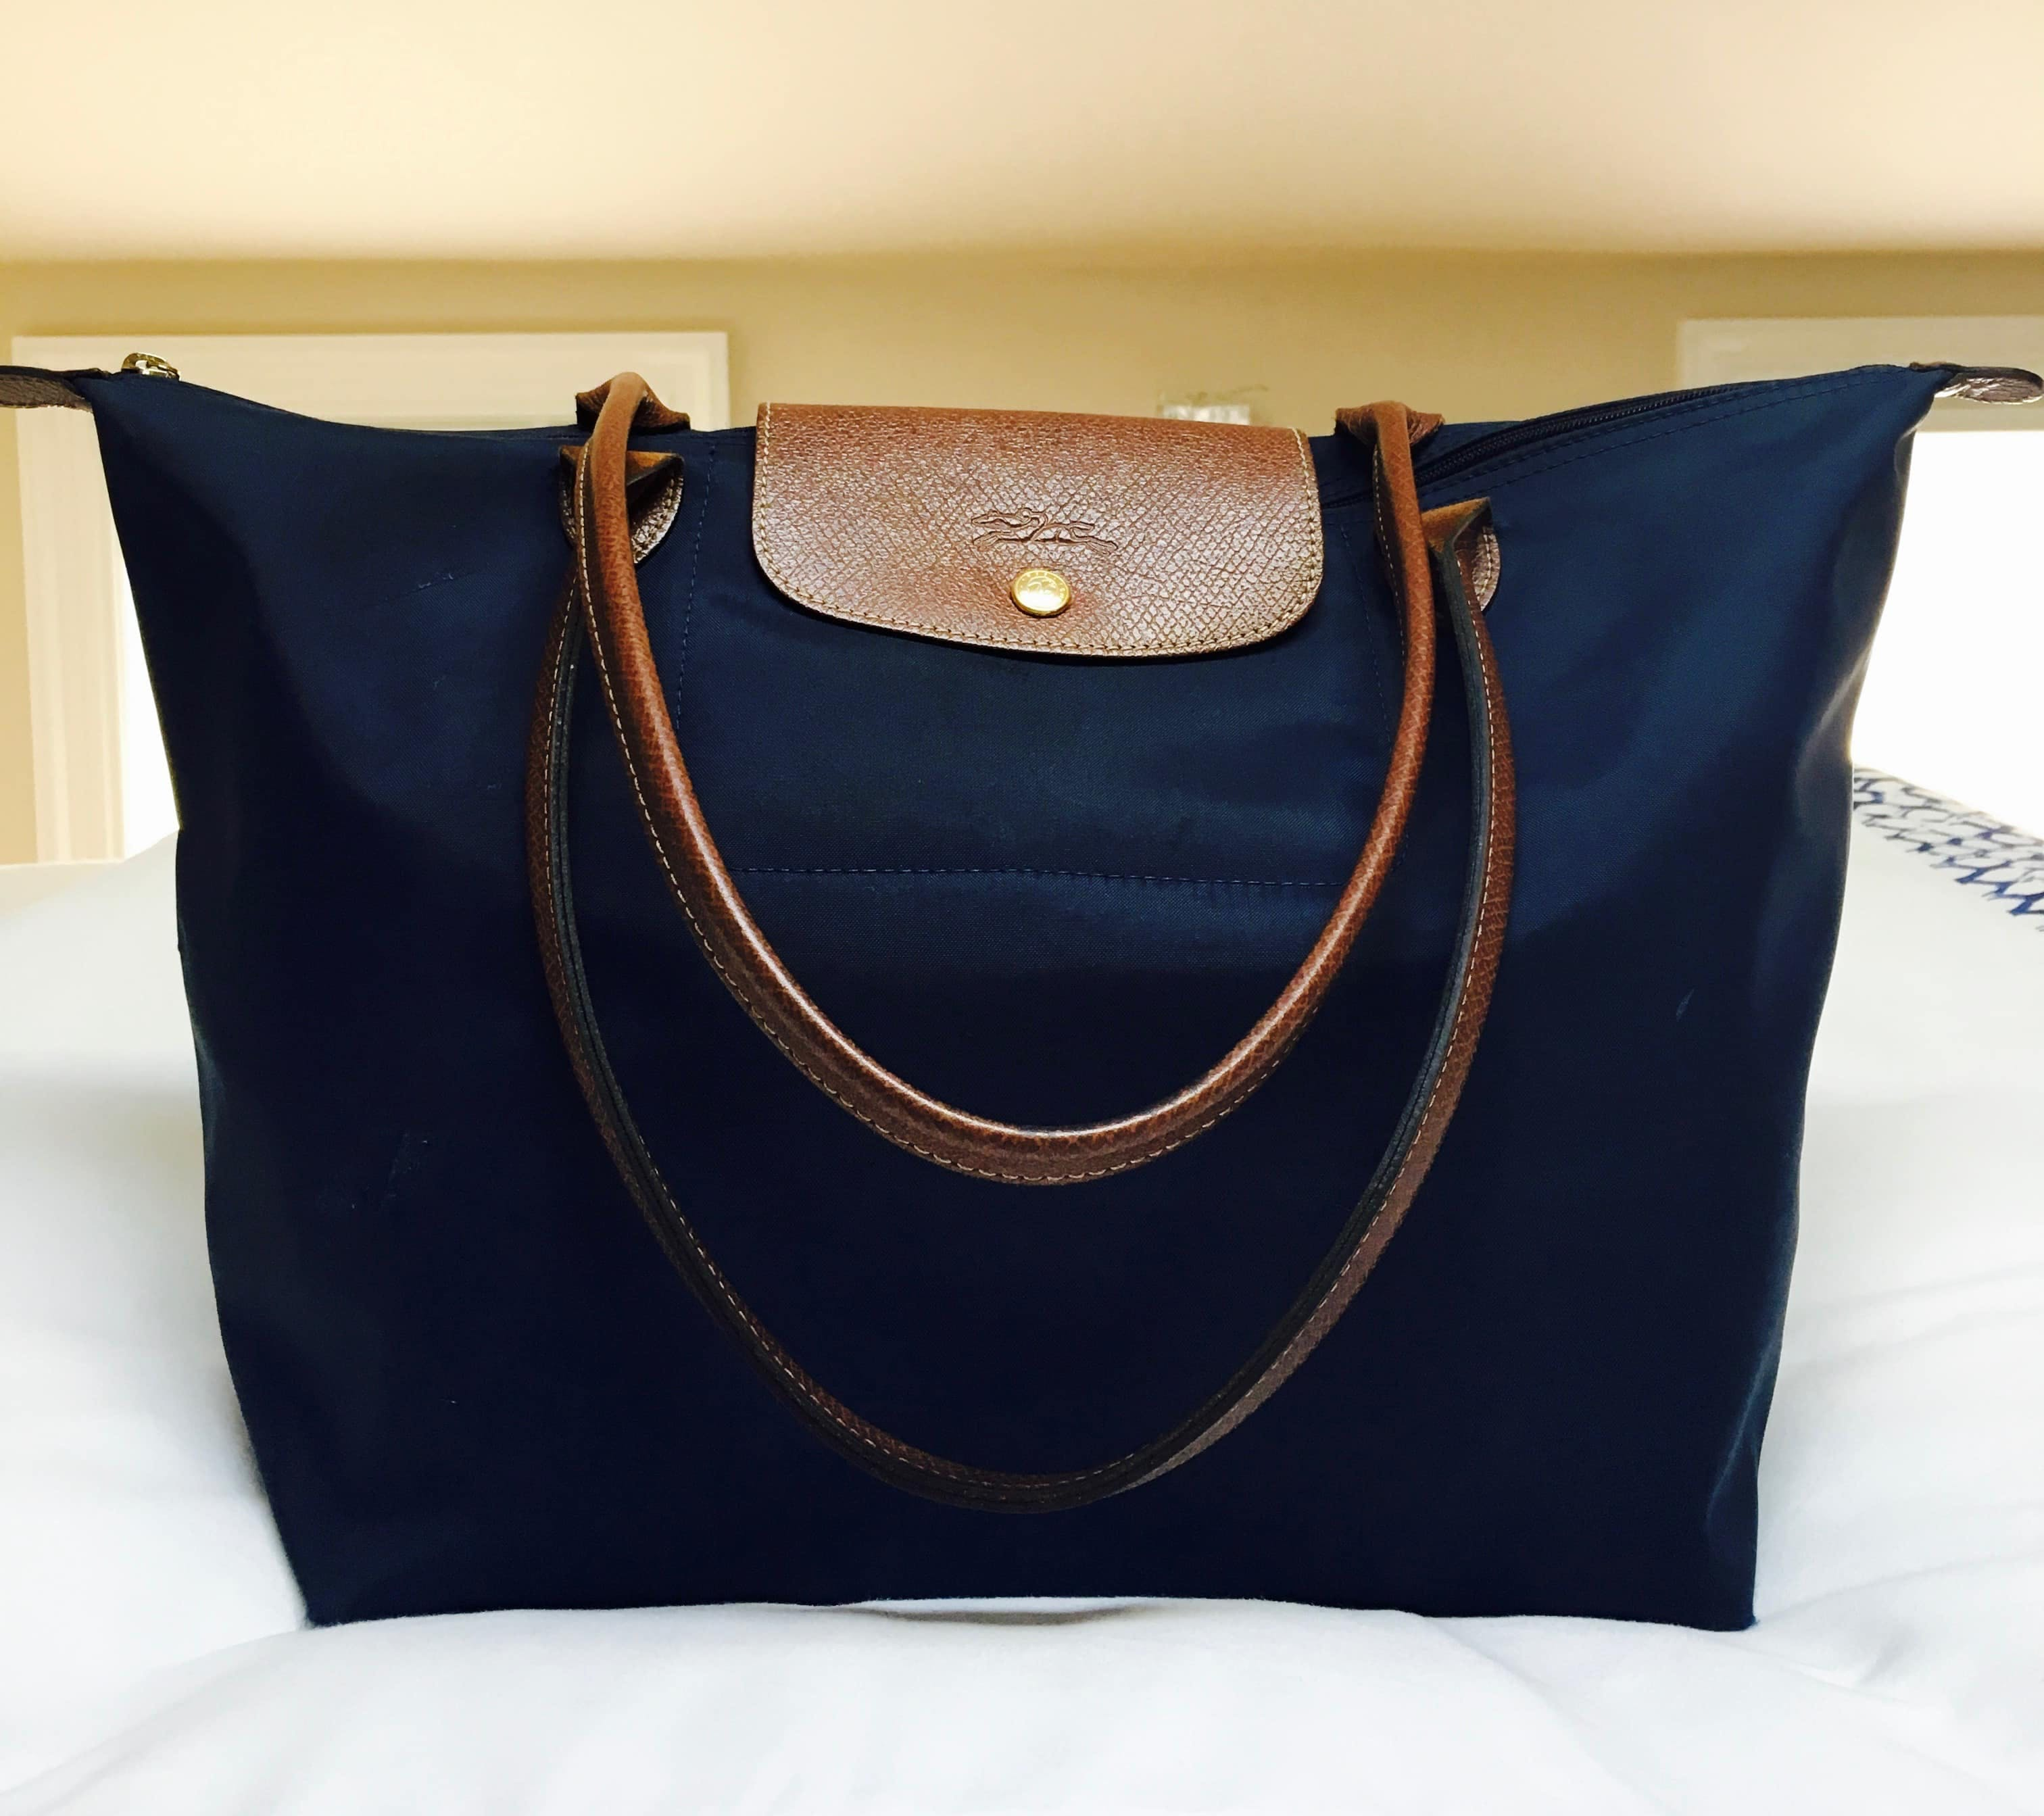 b64db85fce6d Longchamp Le Pliage Travel Tote Review